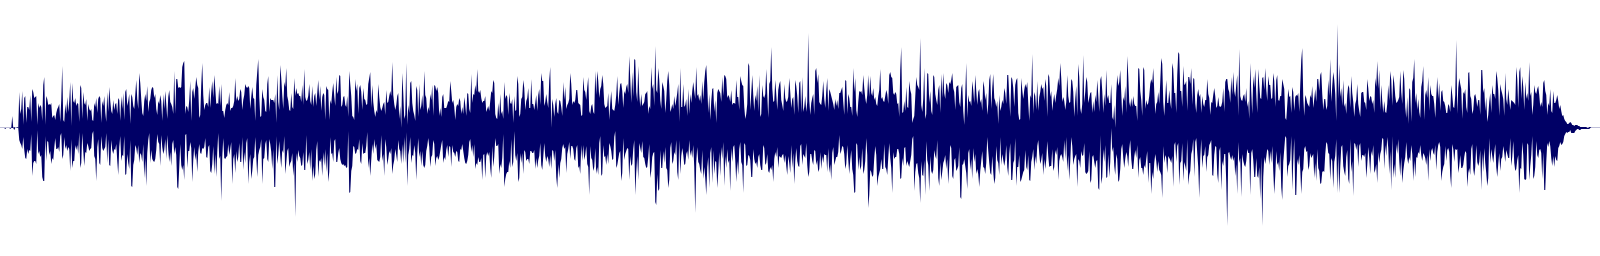 waveform of track #98367